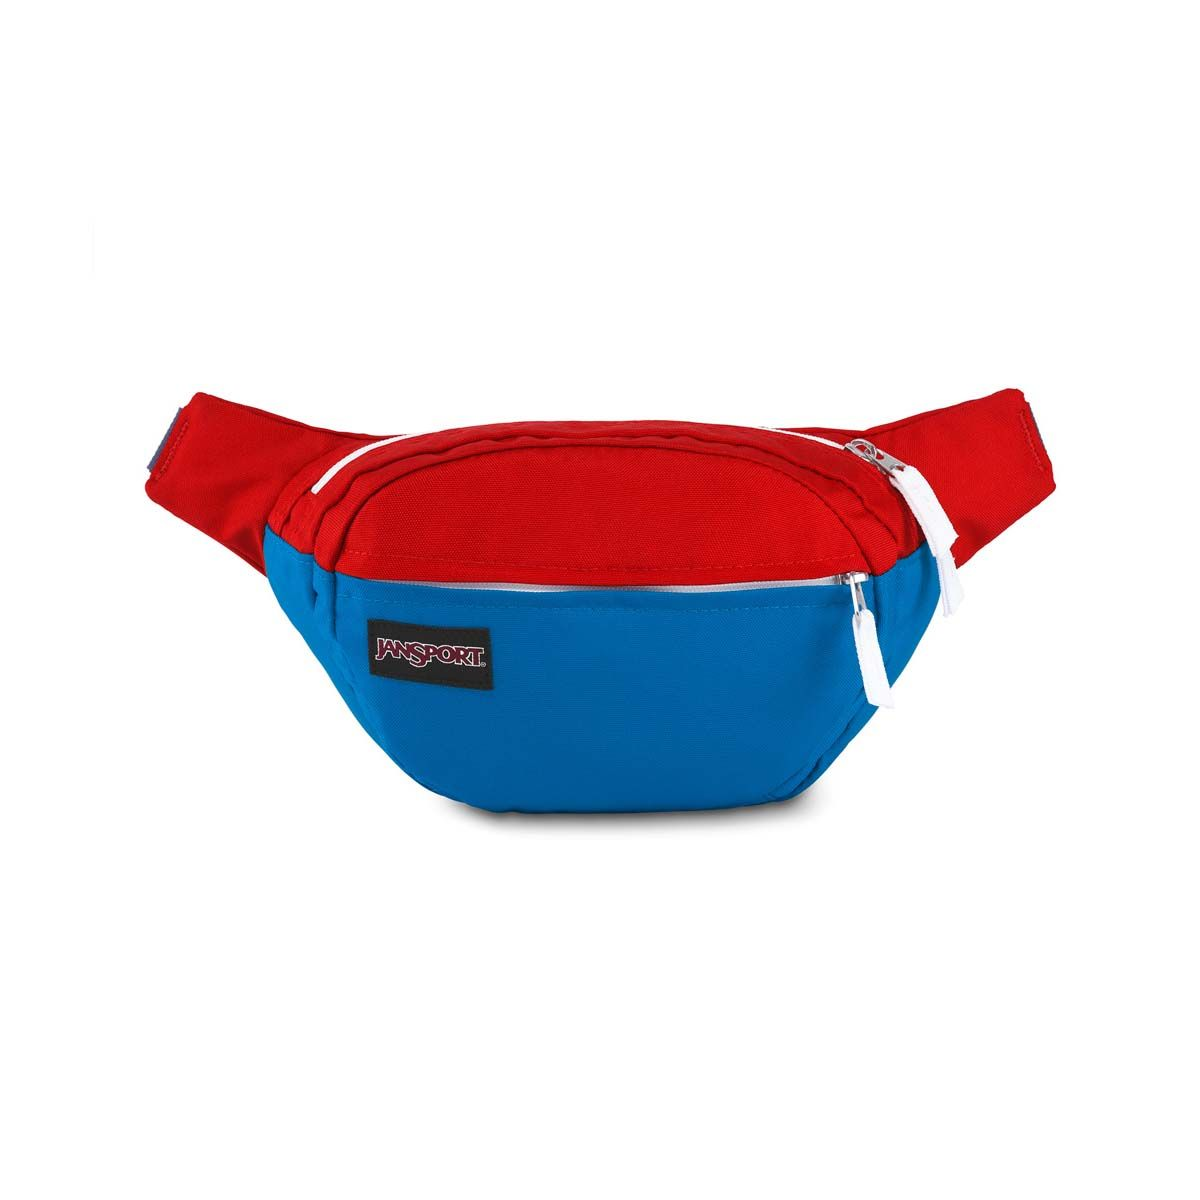 JanSport Fifth Ave Fanny Pack in Red/White/Blue